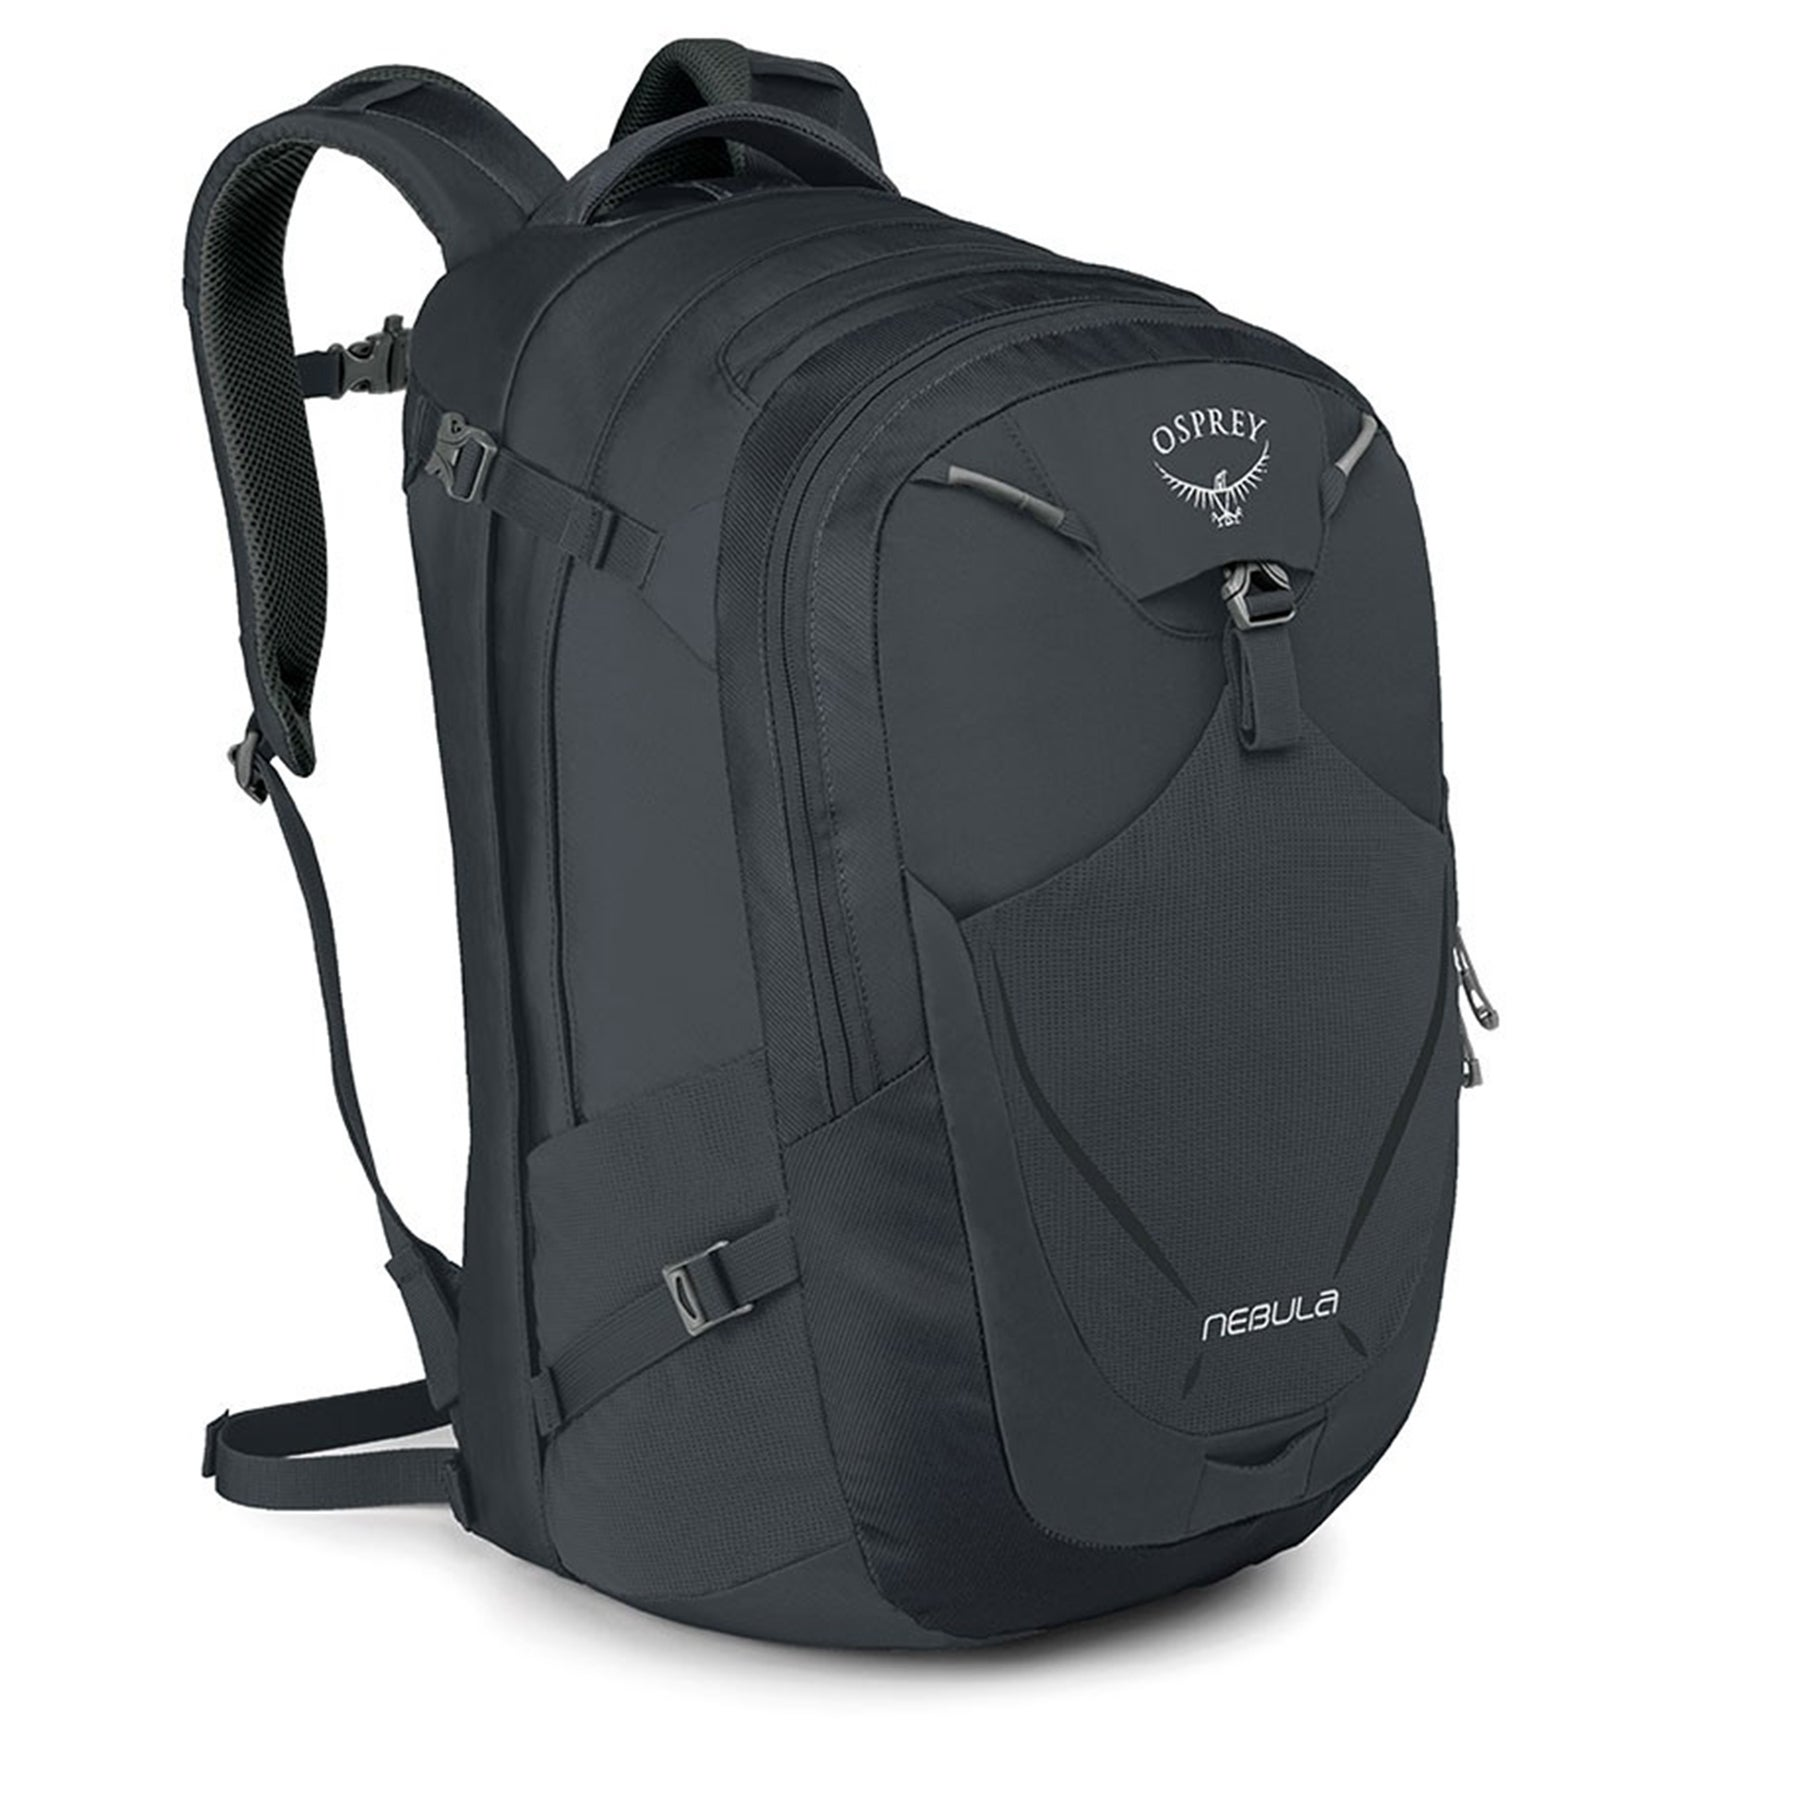 Osprey Nebula 34 Laptop Backpack - Anchor Grey